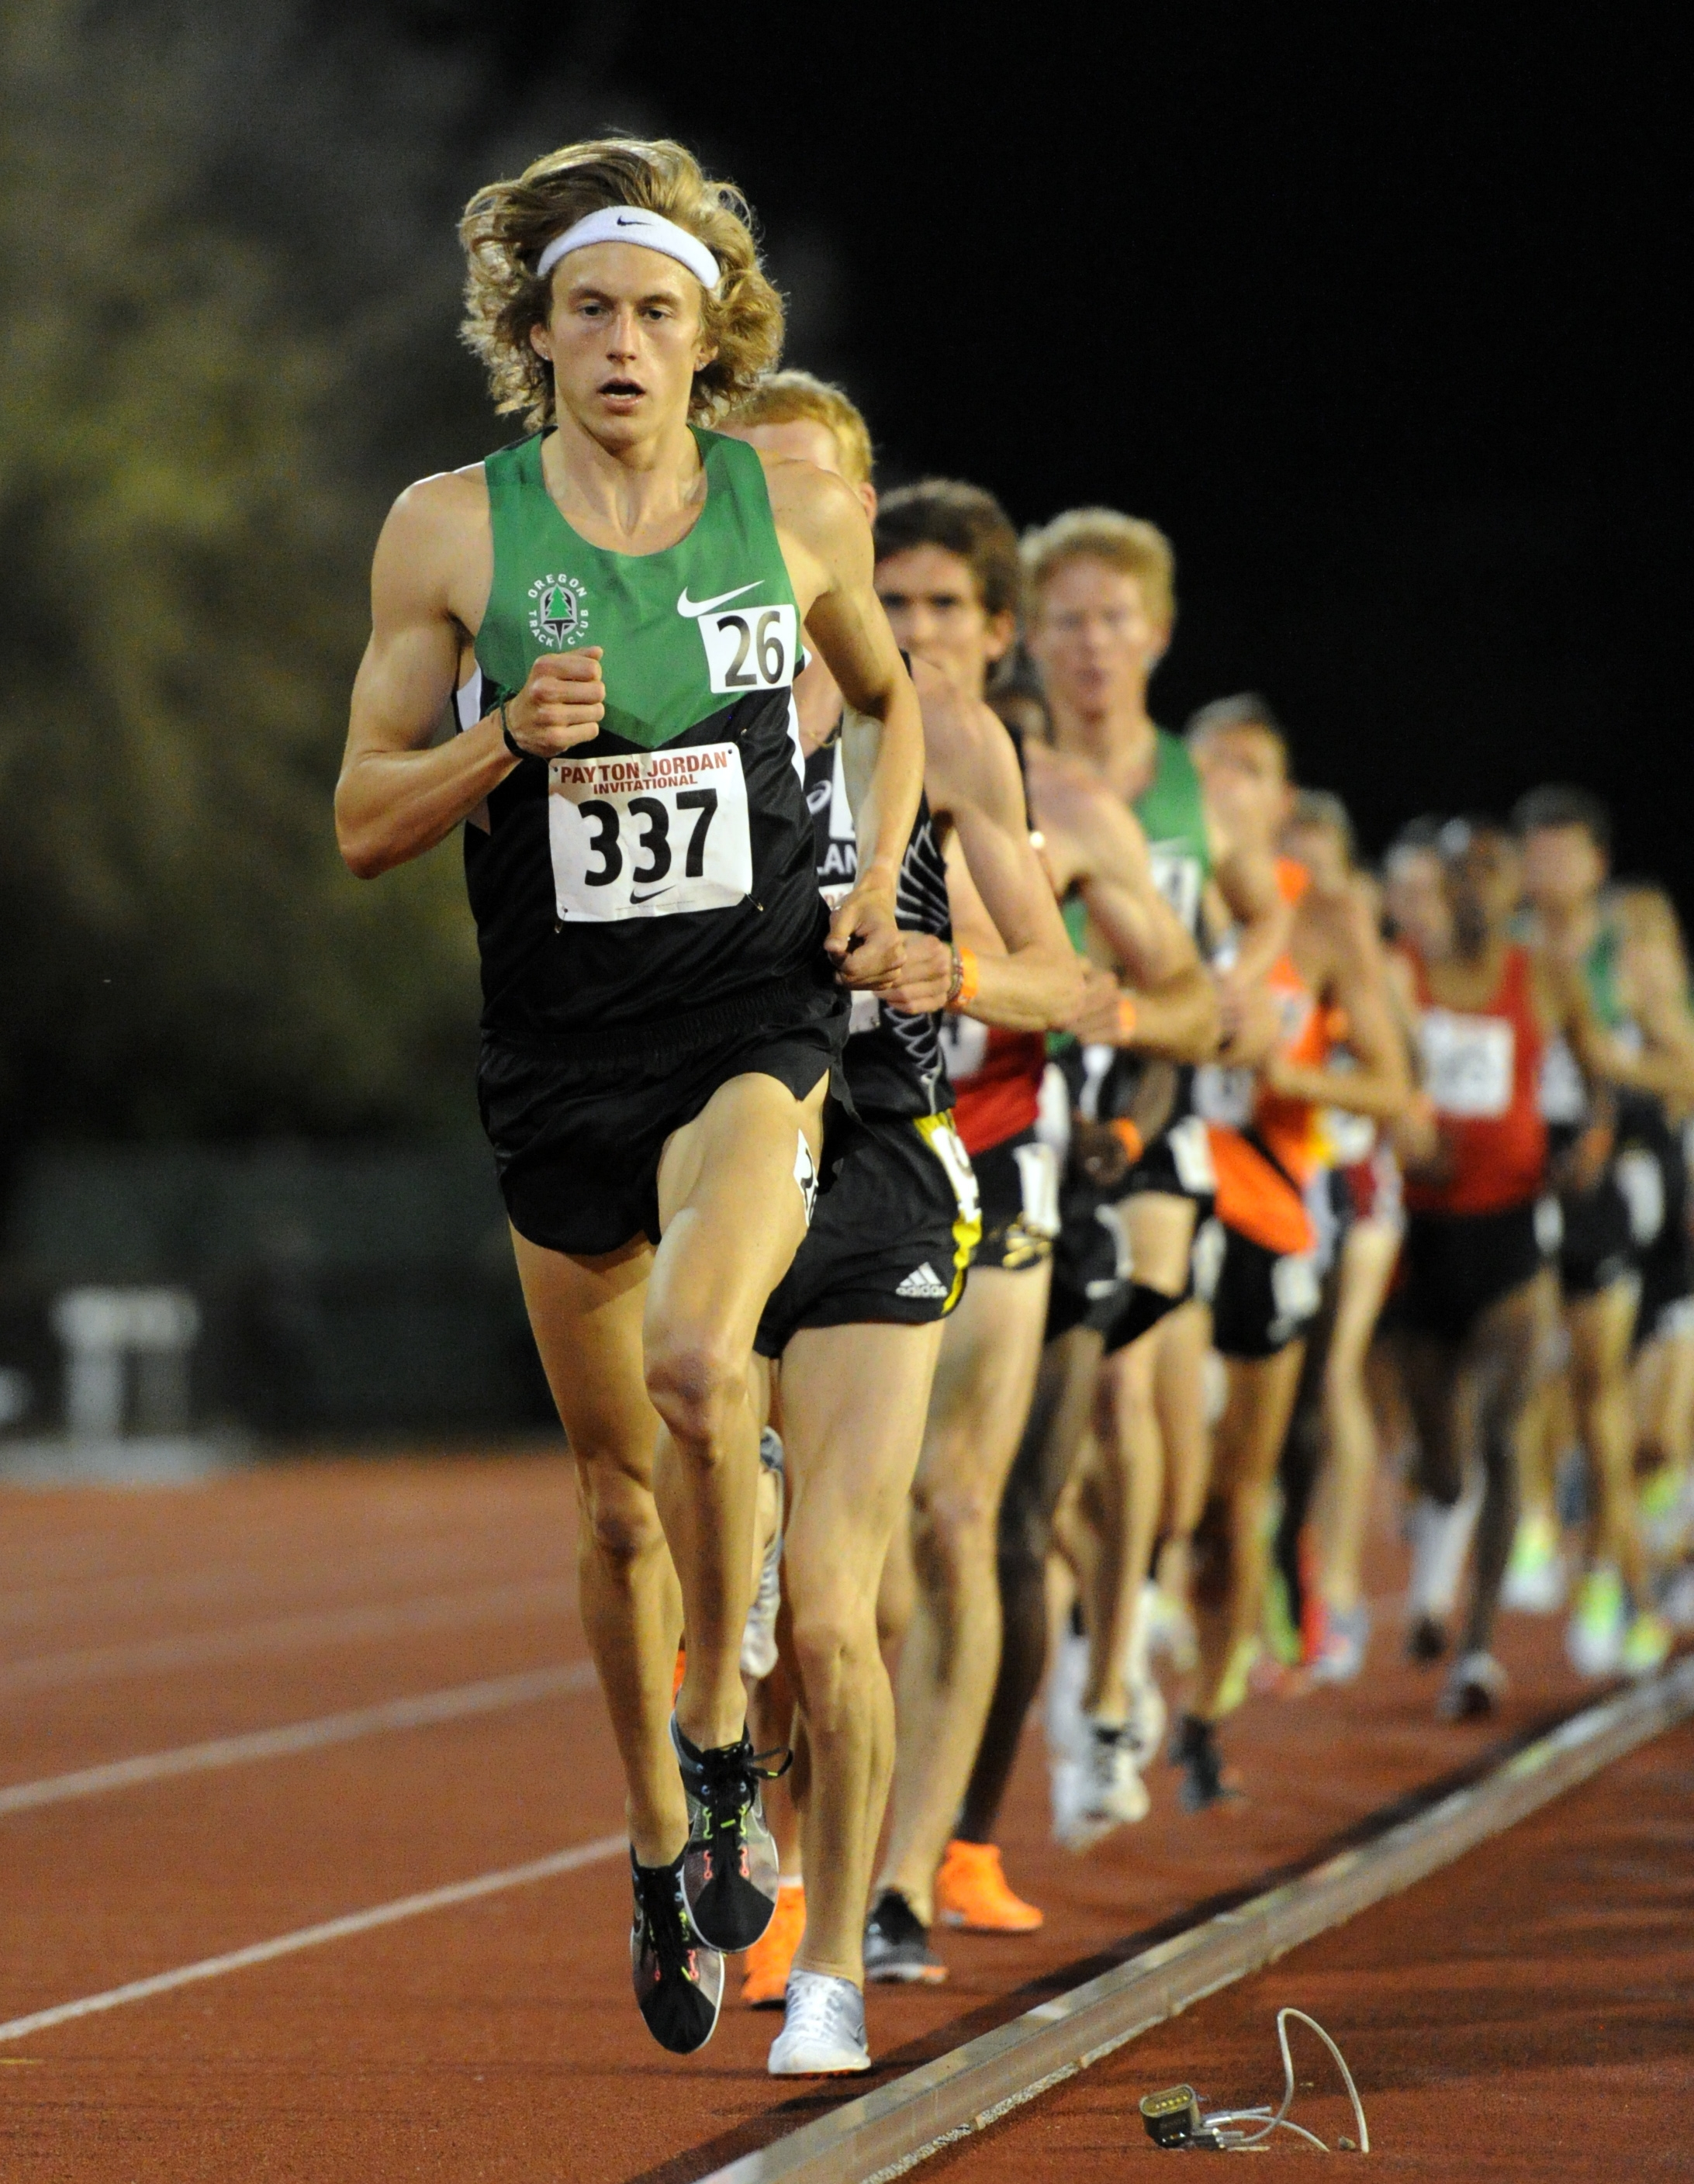 Jager Pacing at Stanford 2012